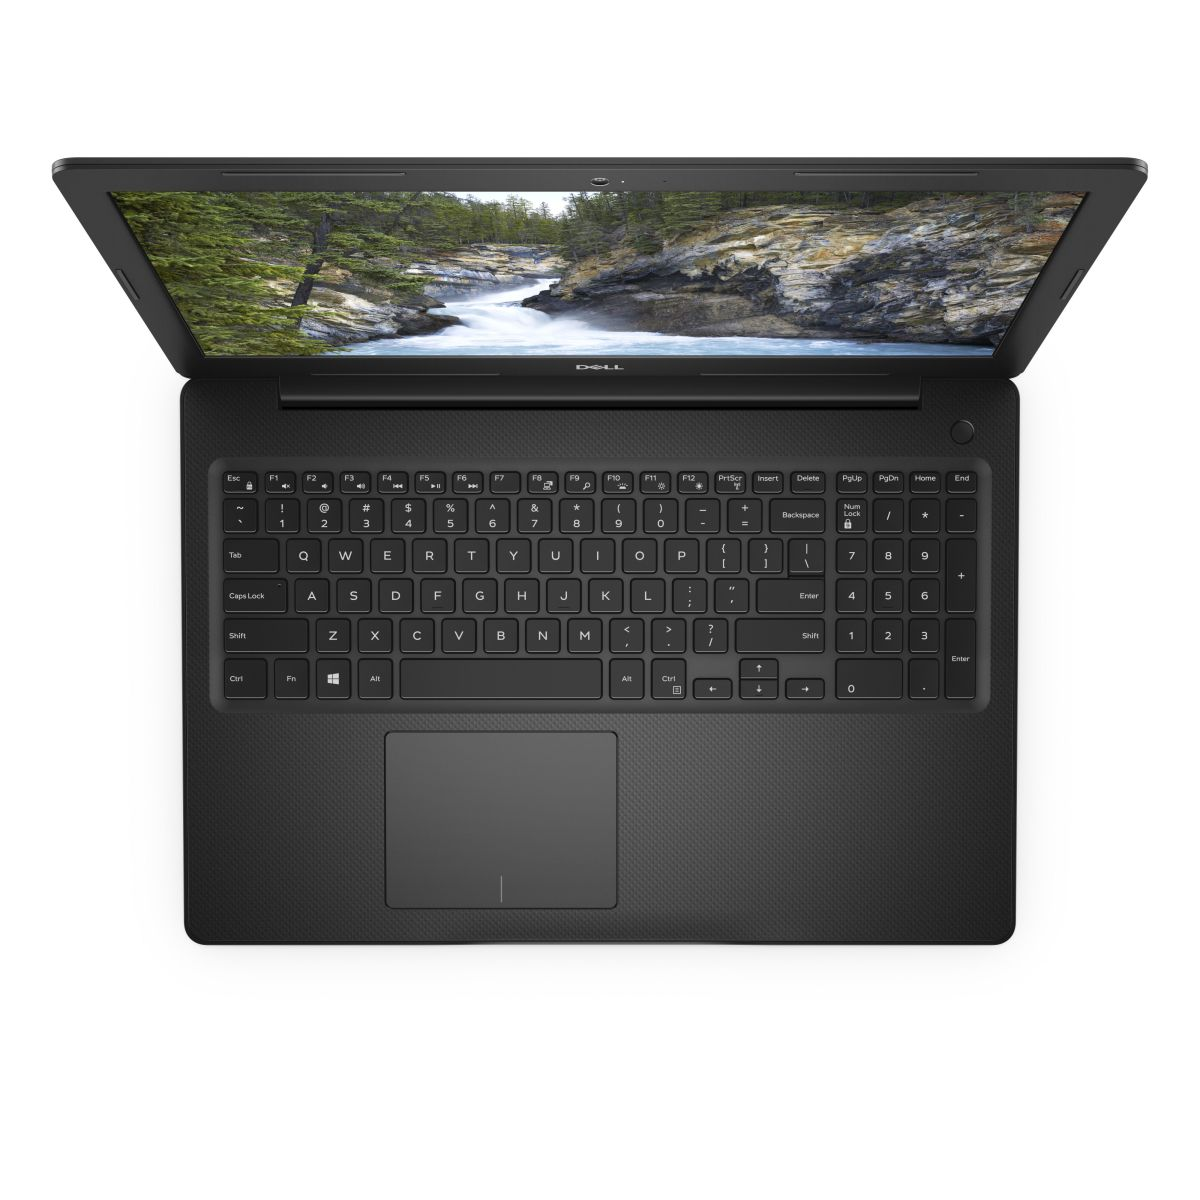 "Notebook Dell Vostro 3583 Core I5 8265u Memoria 8gb Ddr4 Ssd 256gb Tela 15,6"" Hd Sistema Windows 10 Home"